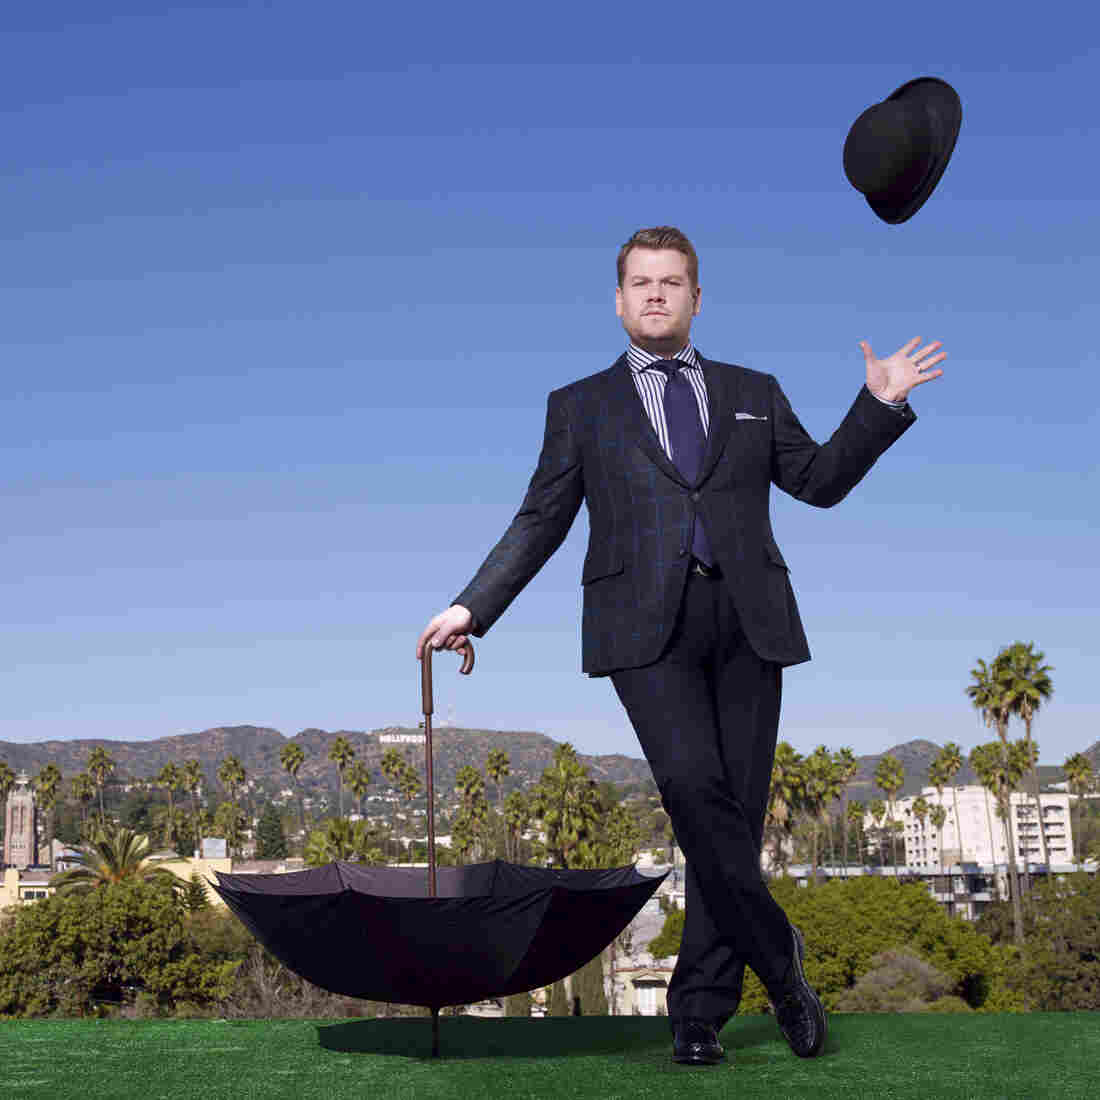 One Man, New TV Show: James Corden Takes Over At 'Late Late Night'